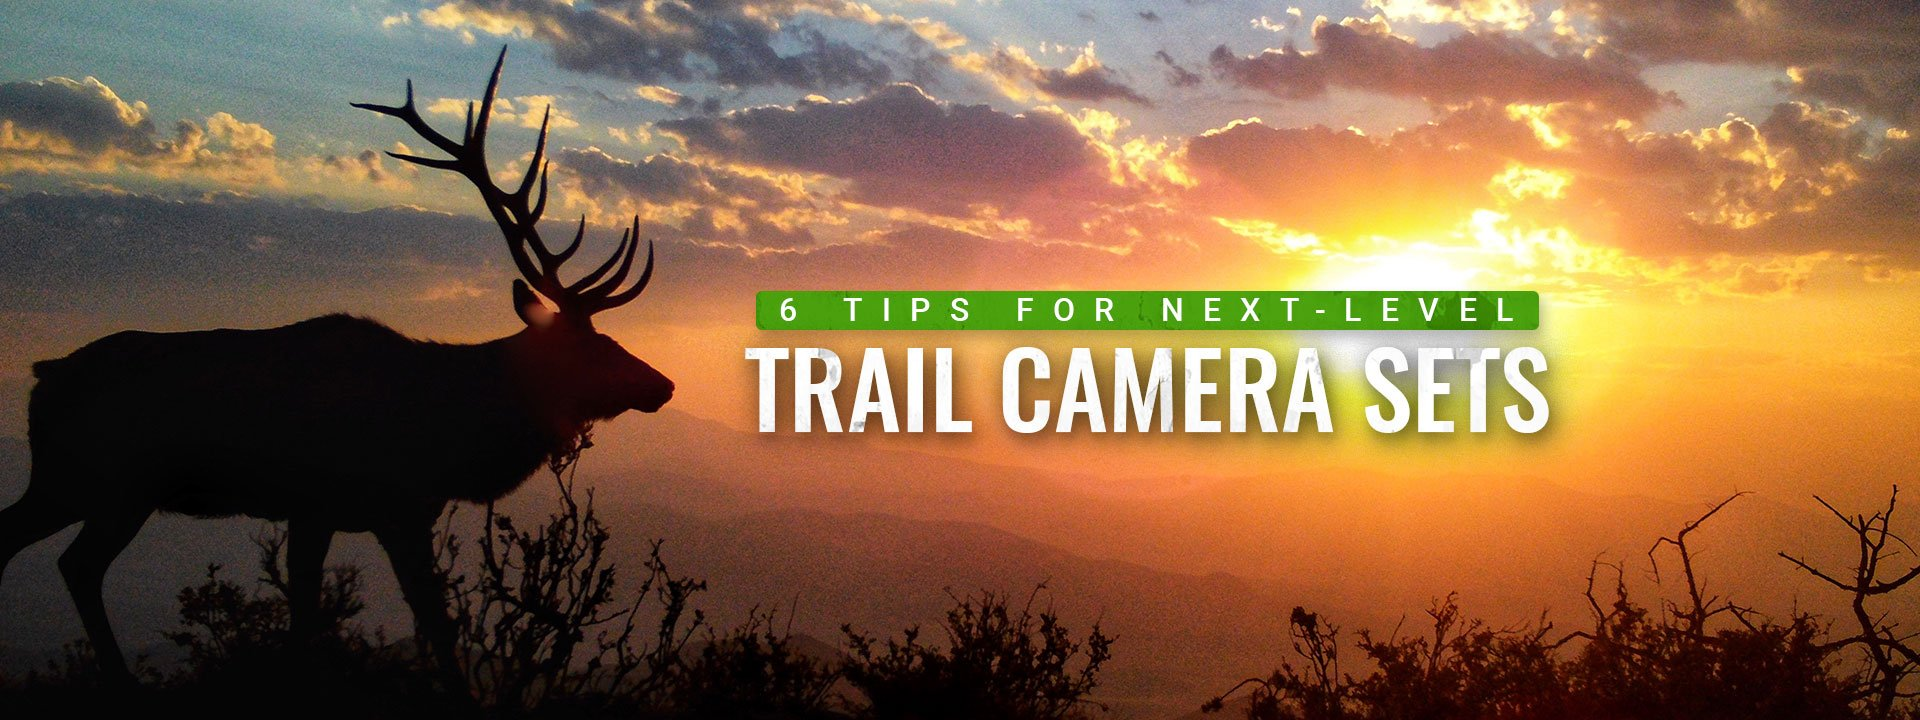 How To Get Next-Level Trail Camera Content